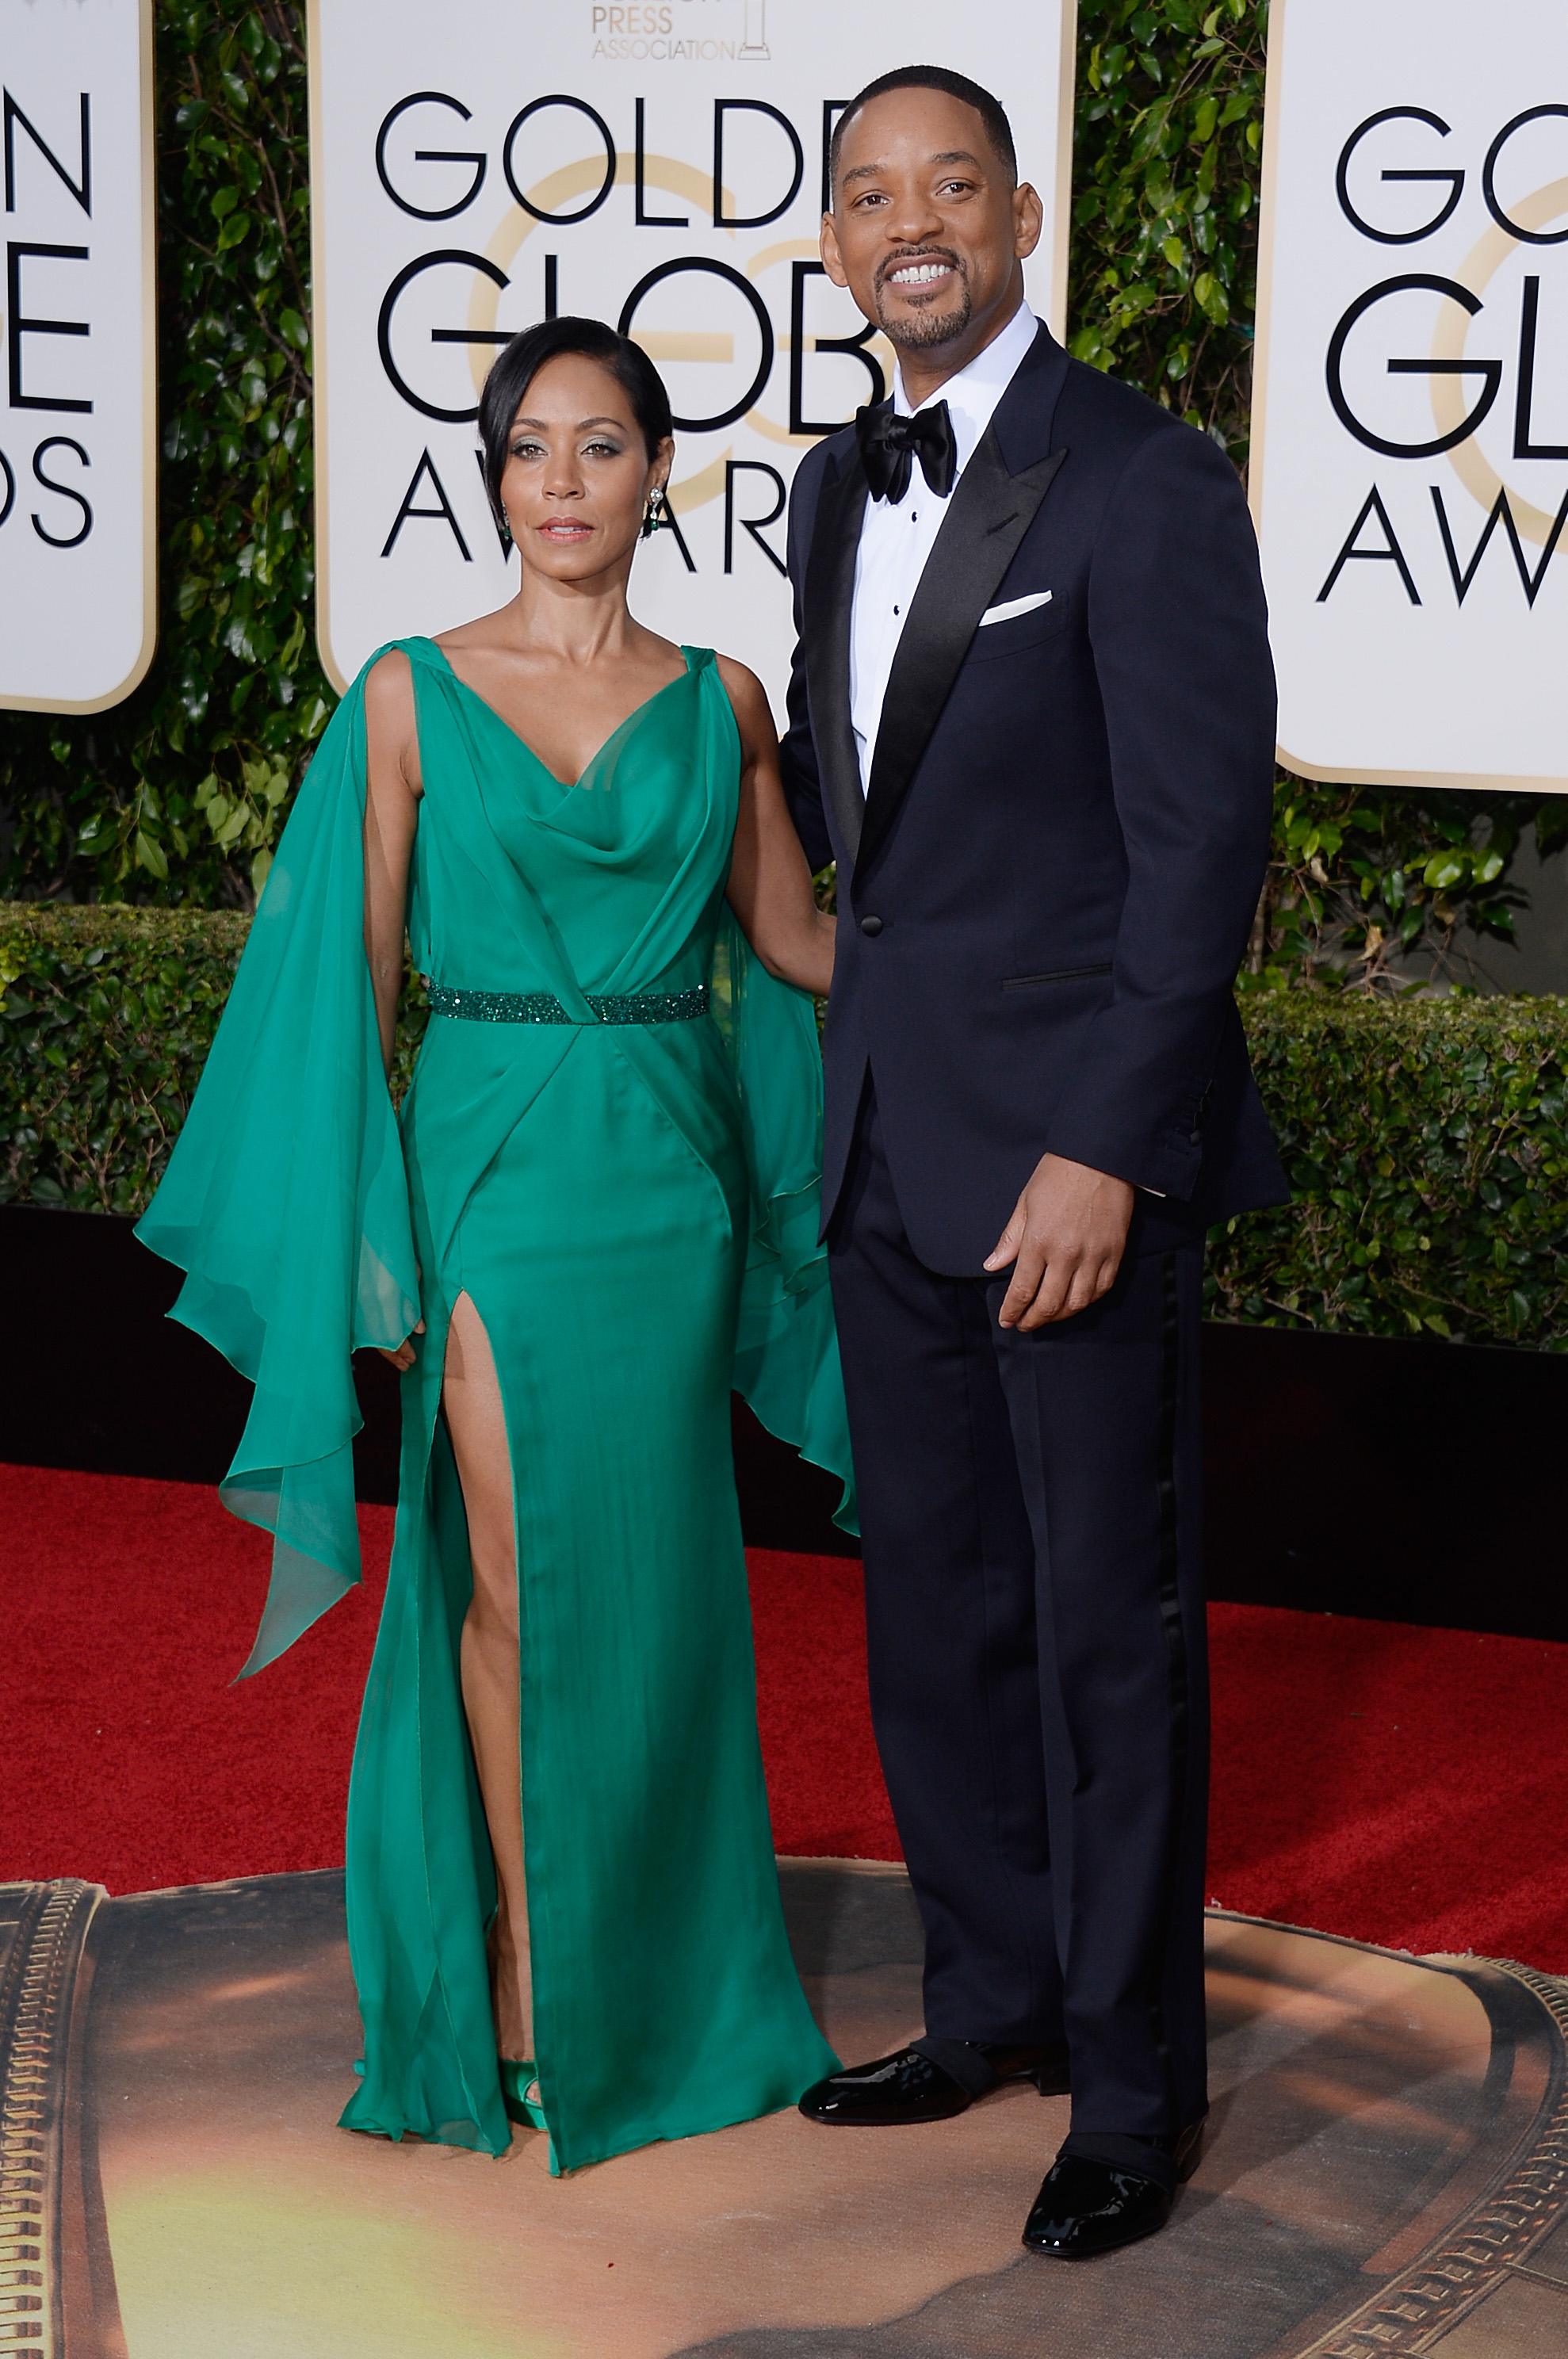 Jada Pinkett Smith and Will Smith arrive to the 73rd Annual Golden Globe Awards on Jan. 10, 2016 in Beverly Hills.